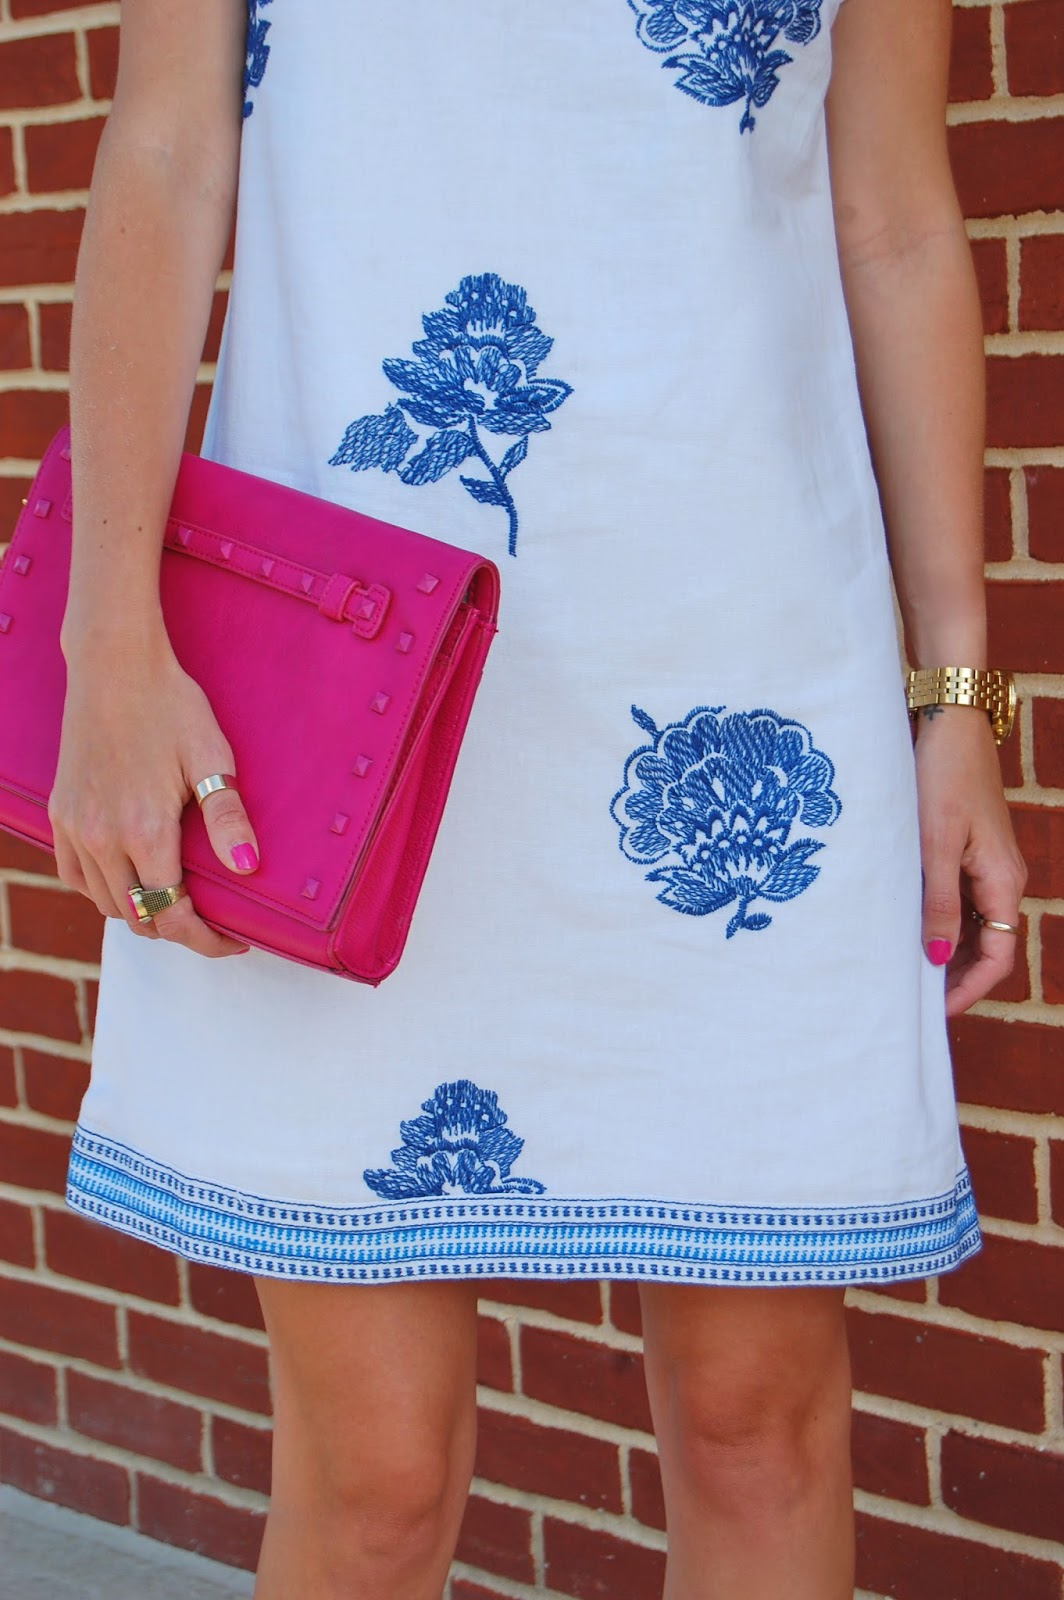 Wearing Old Navy Embroidered Linen Blend Shift Dress, Wearing Jcrew Studded Lace Up Gladiator Sandals, Neiman Marcus Pink Studded Tonal Clutch